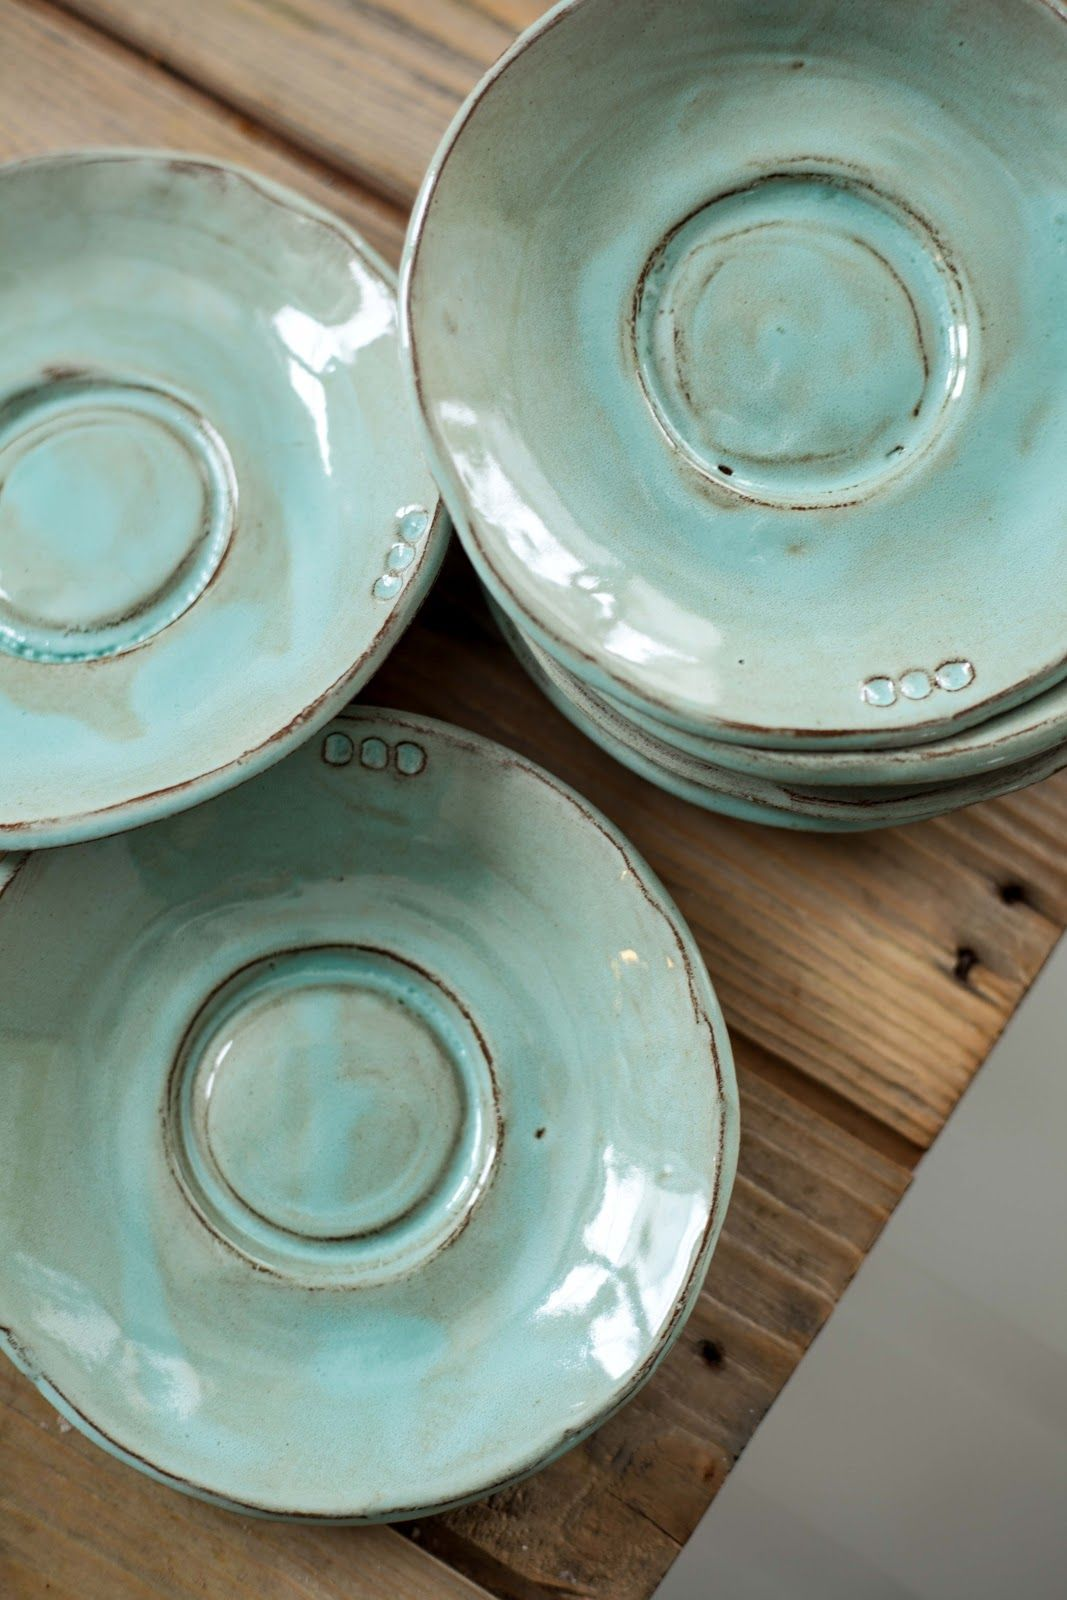 (Or Duck-Egg Blue? The interior designers favourite) I think Iu0027m going to have a go at recreating this kind of teal-on-terracotta glaze on our dye sub mugs. & teal pottery . Teal! (Or Duck-Egg Blue? The interior designers ...